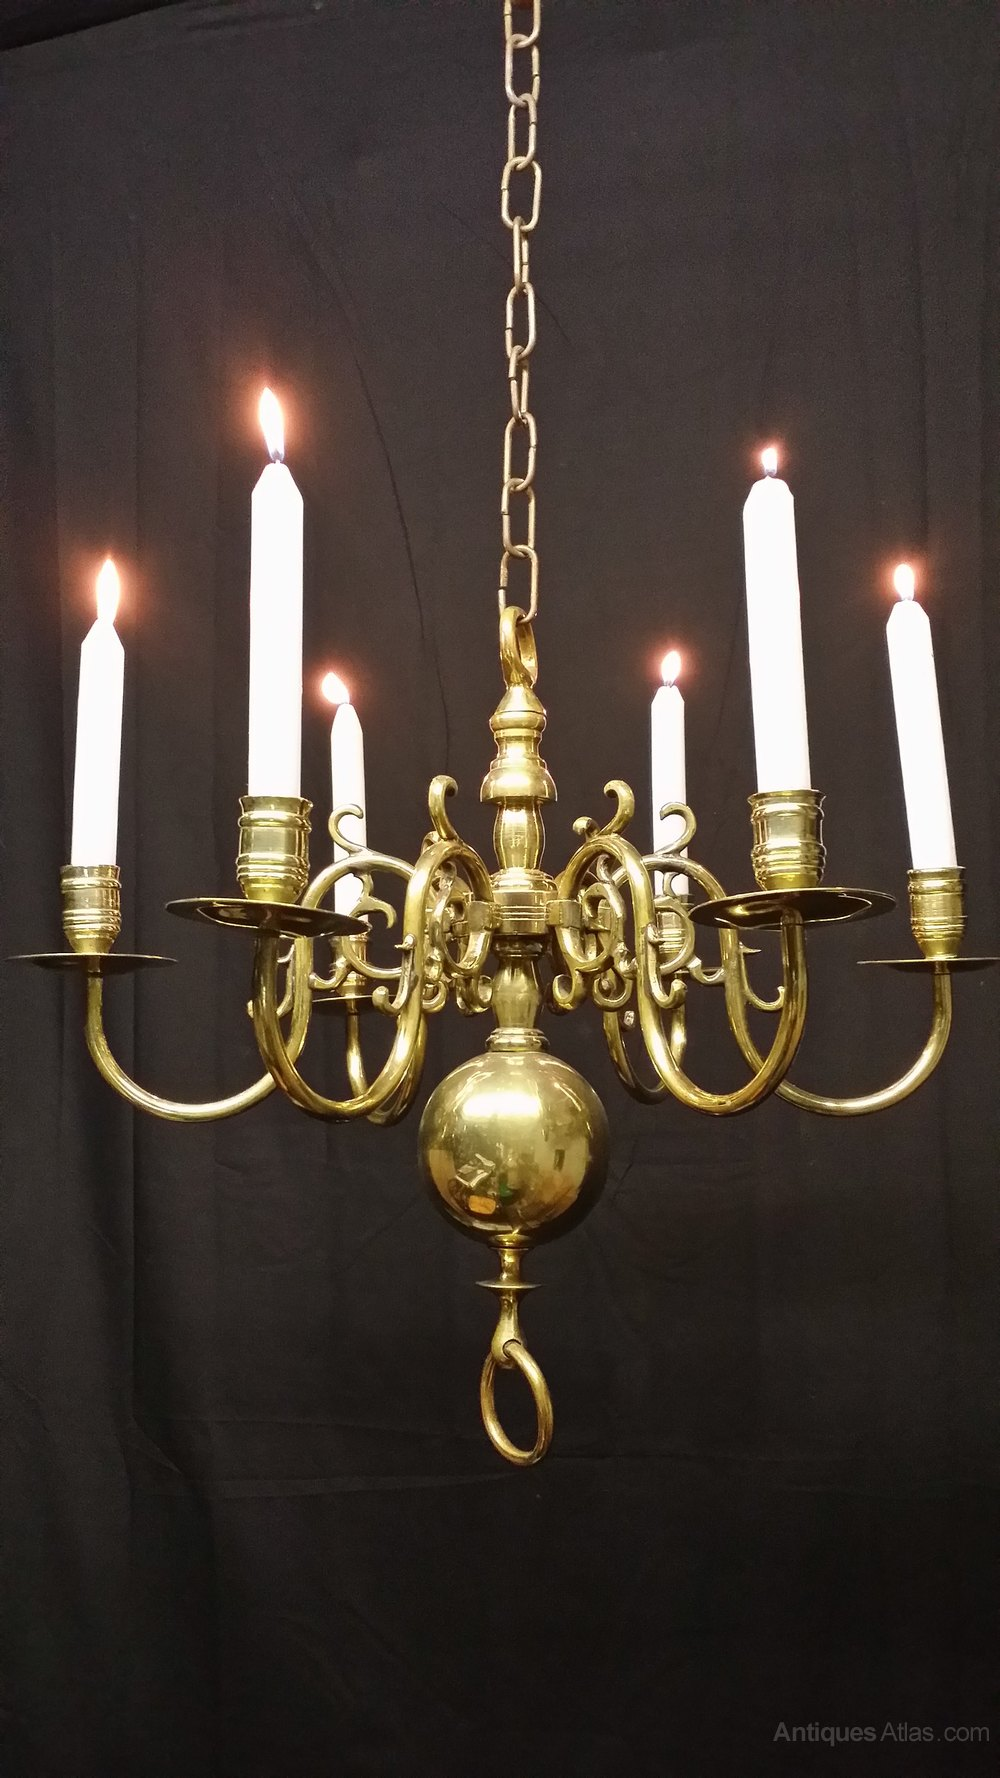 Brass flemish chandeliers flemish chandeliers enjoy your dinner partys with this excellent victorian six candle light flemish chandelier this chandelier is very good quality and is in excellent arubaitofo Gallery